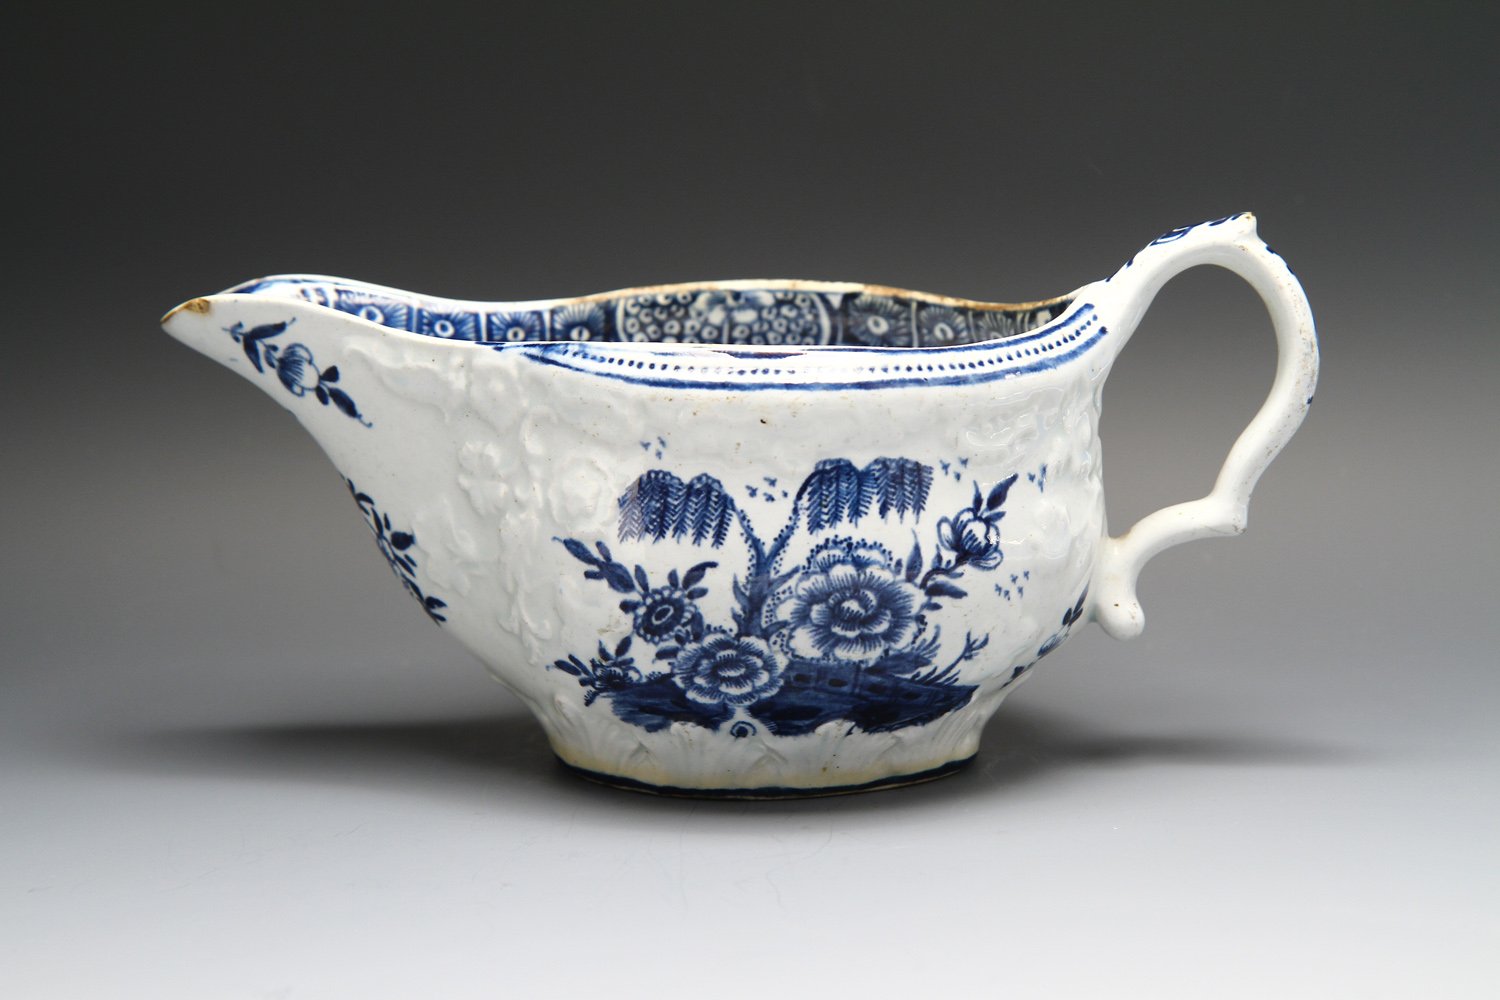 1106 - An unusual Bow sauceboat c 1762-7